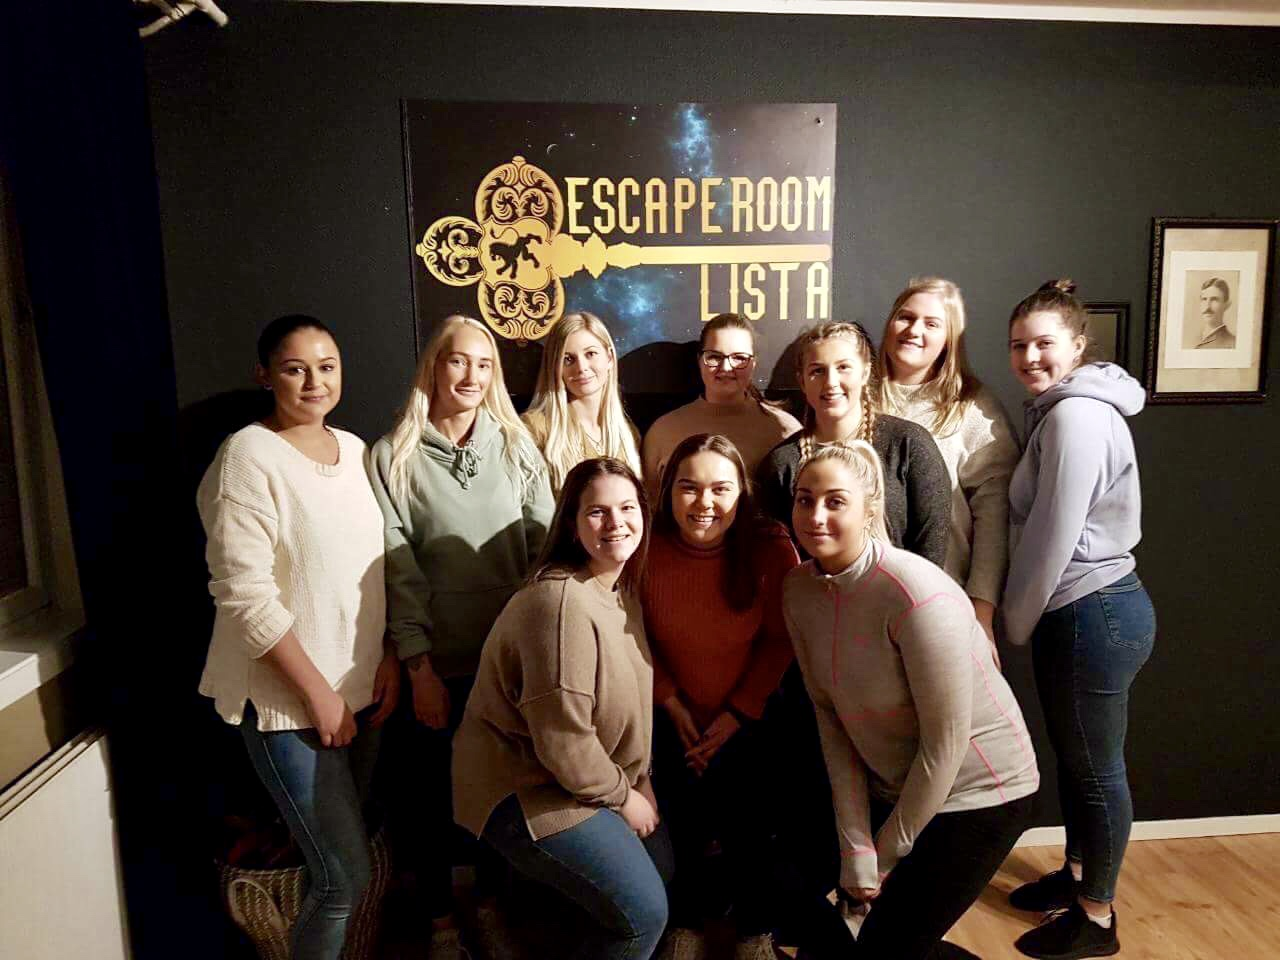 Lapark-Escape-room-51